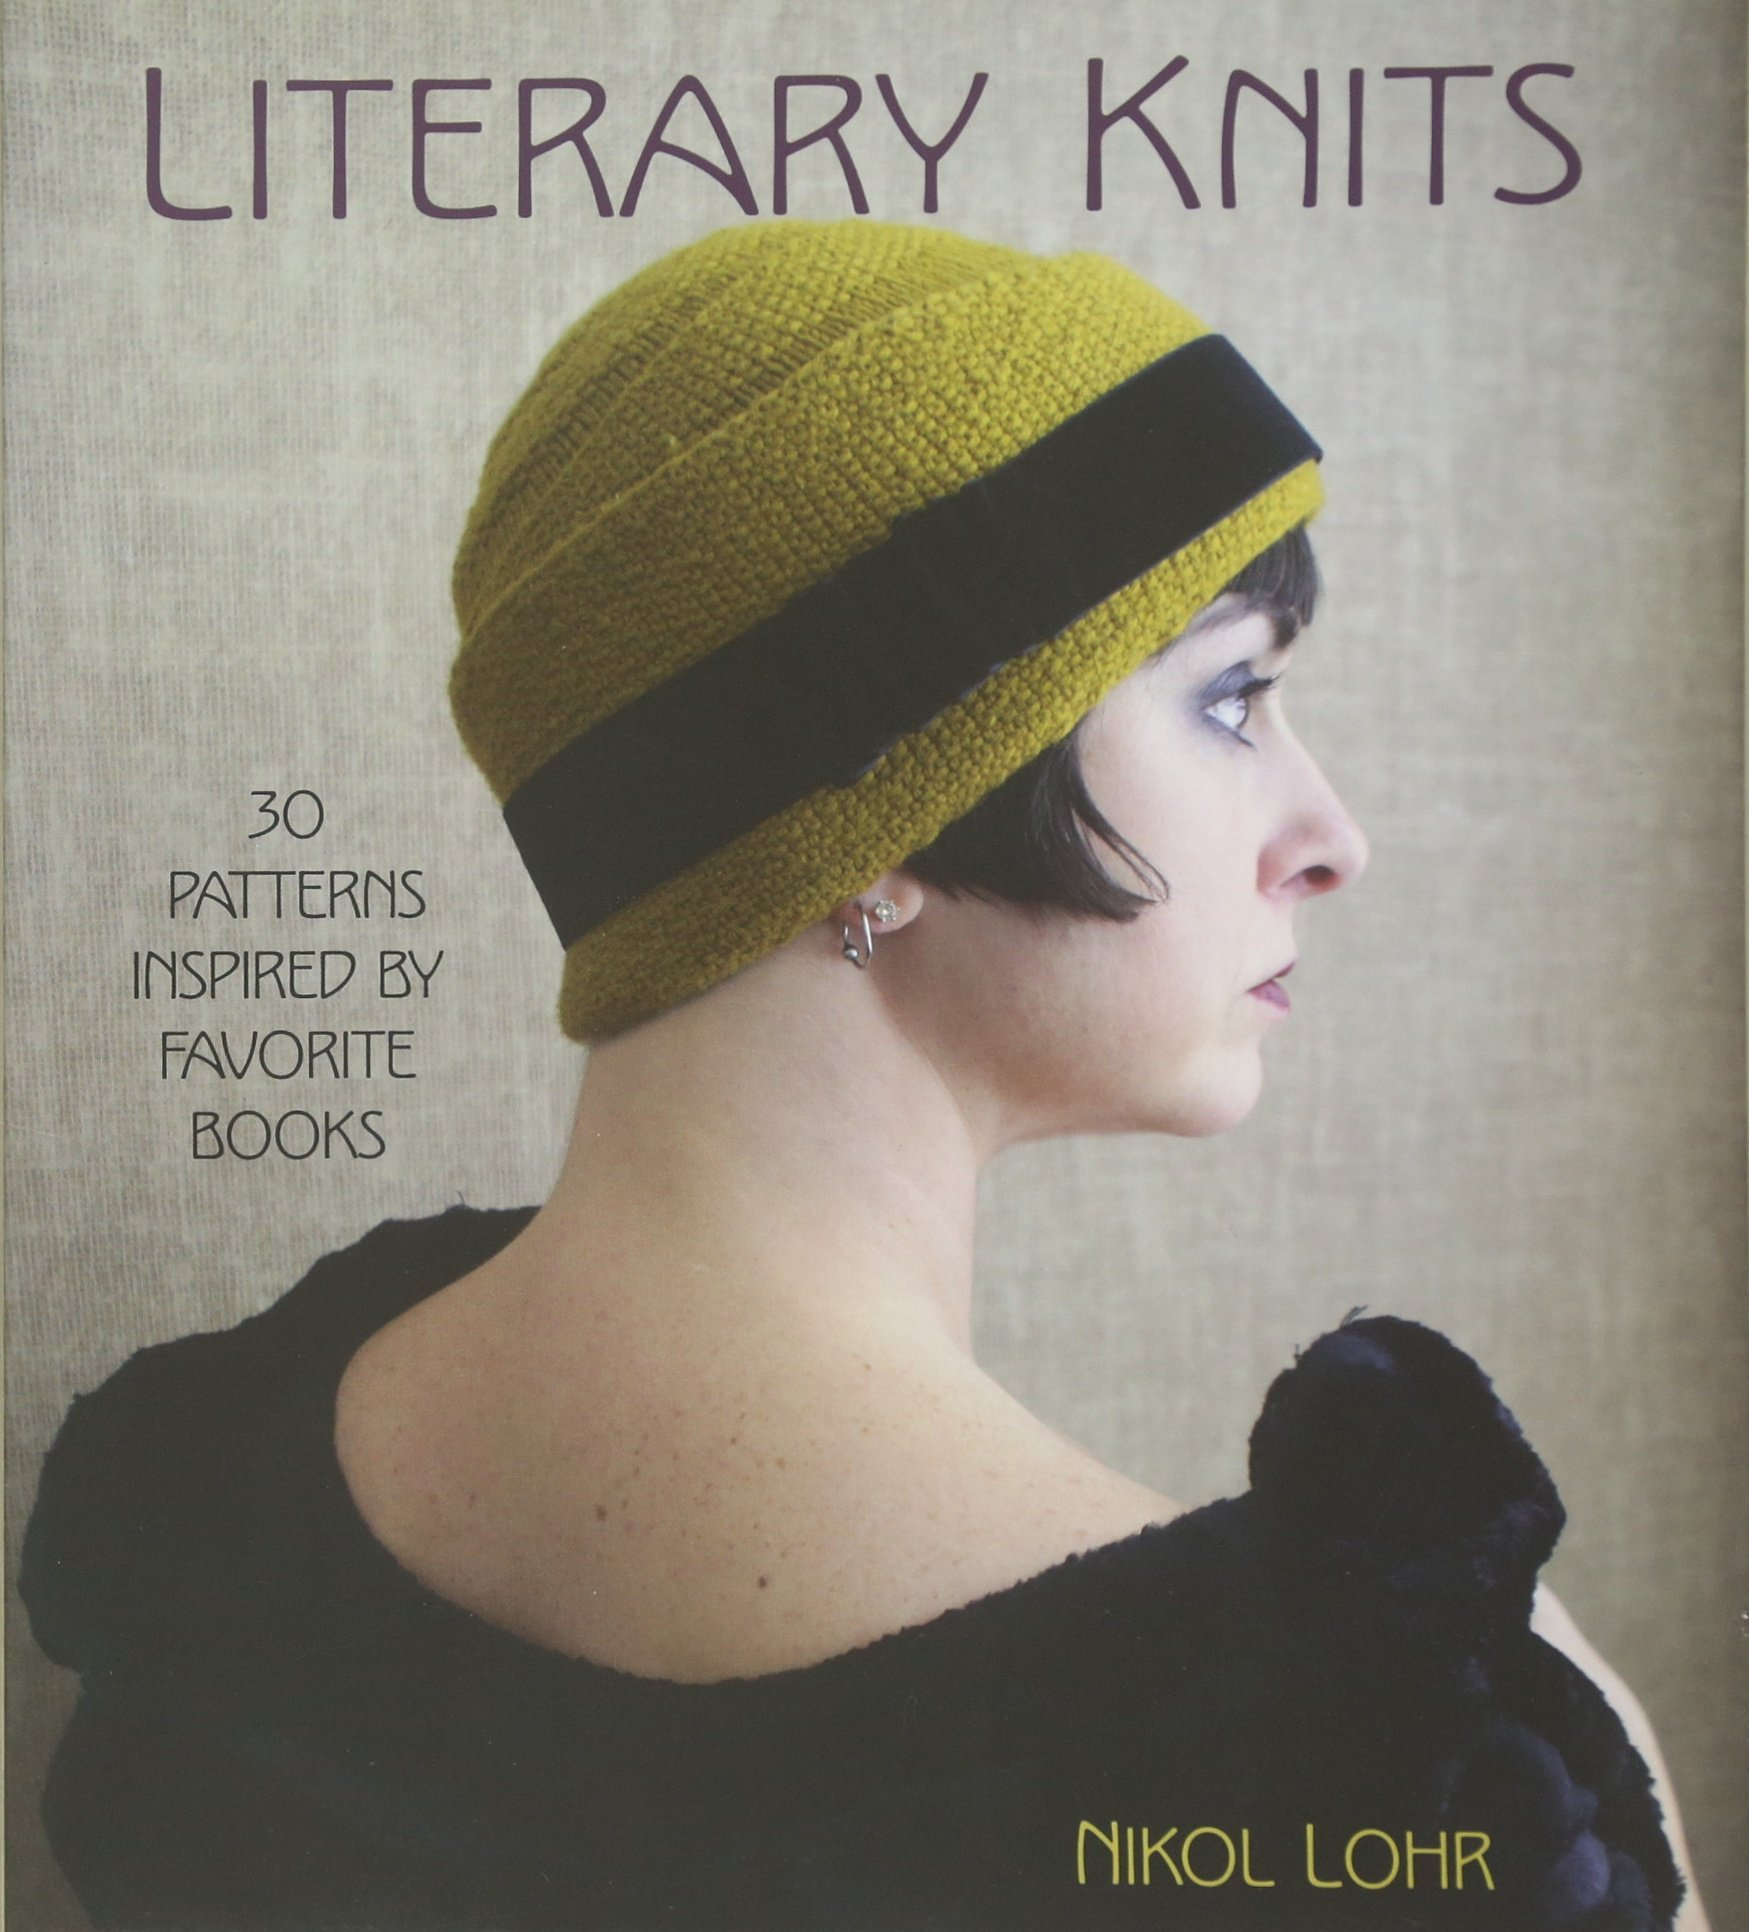 Literary Knits: 30 Patterns Inspired by Favorite Books ebook